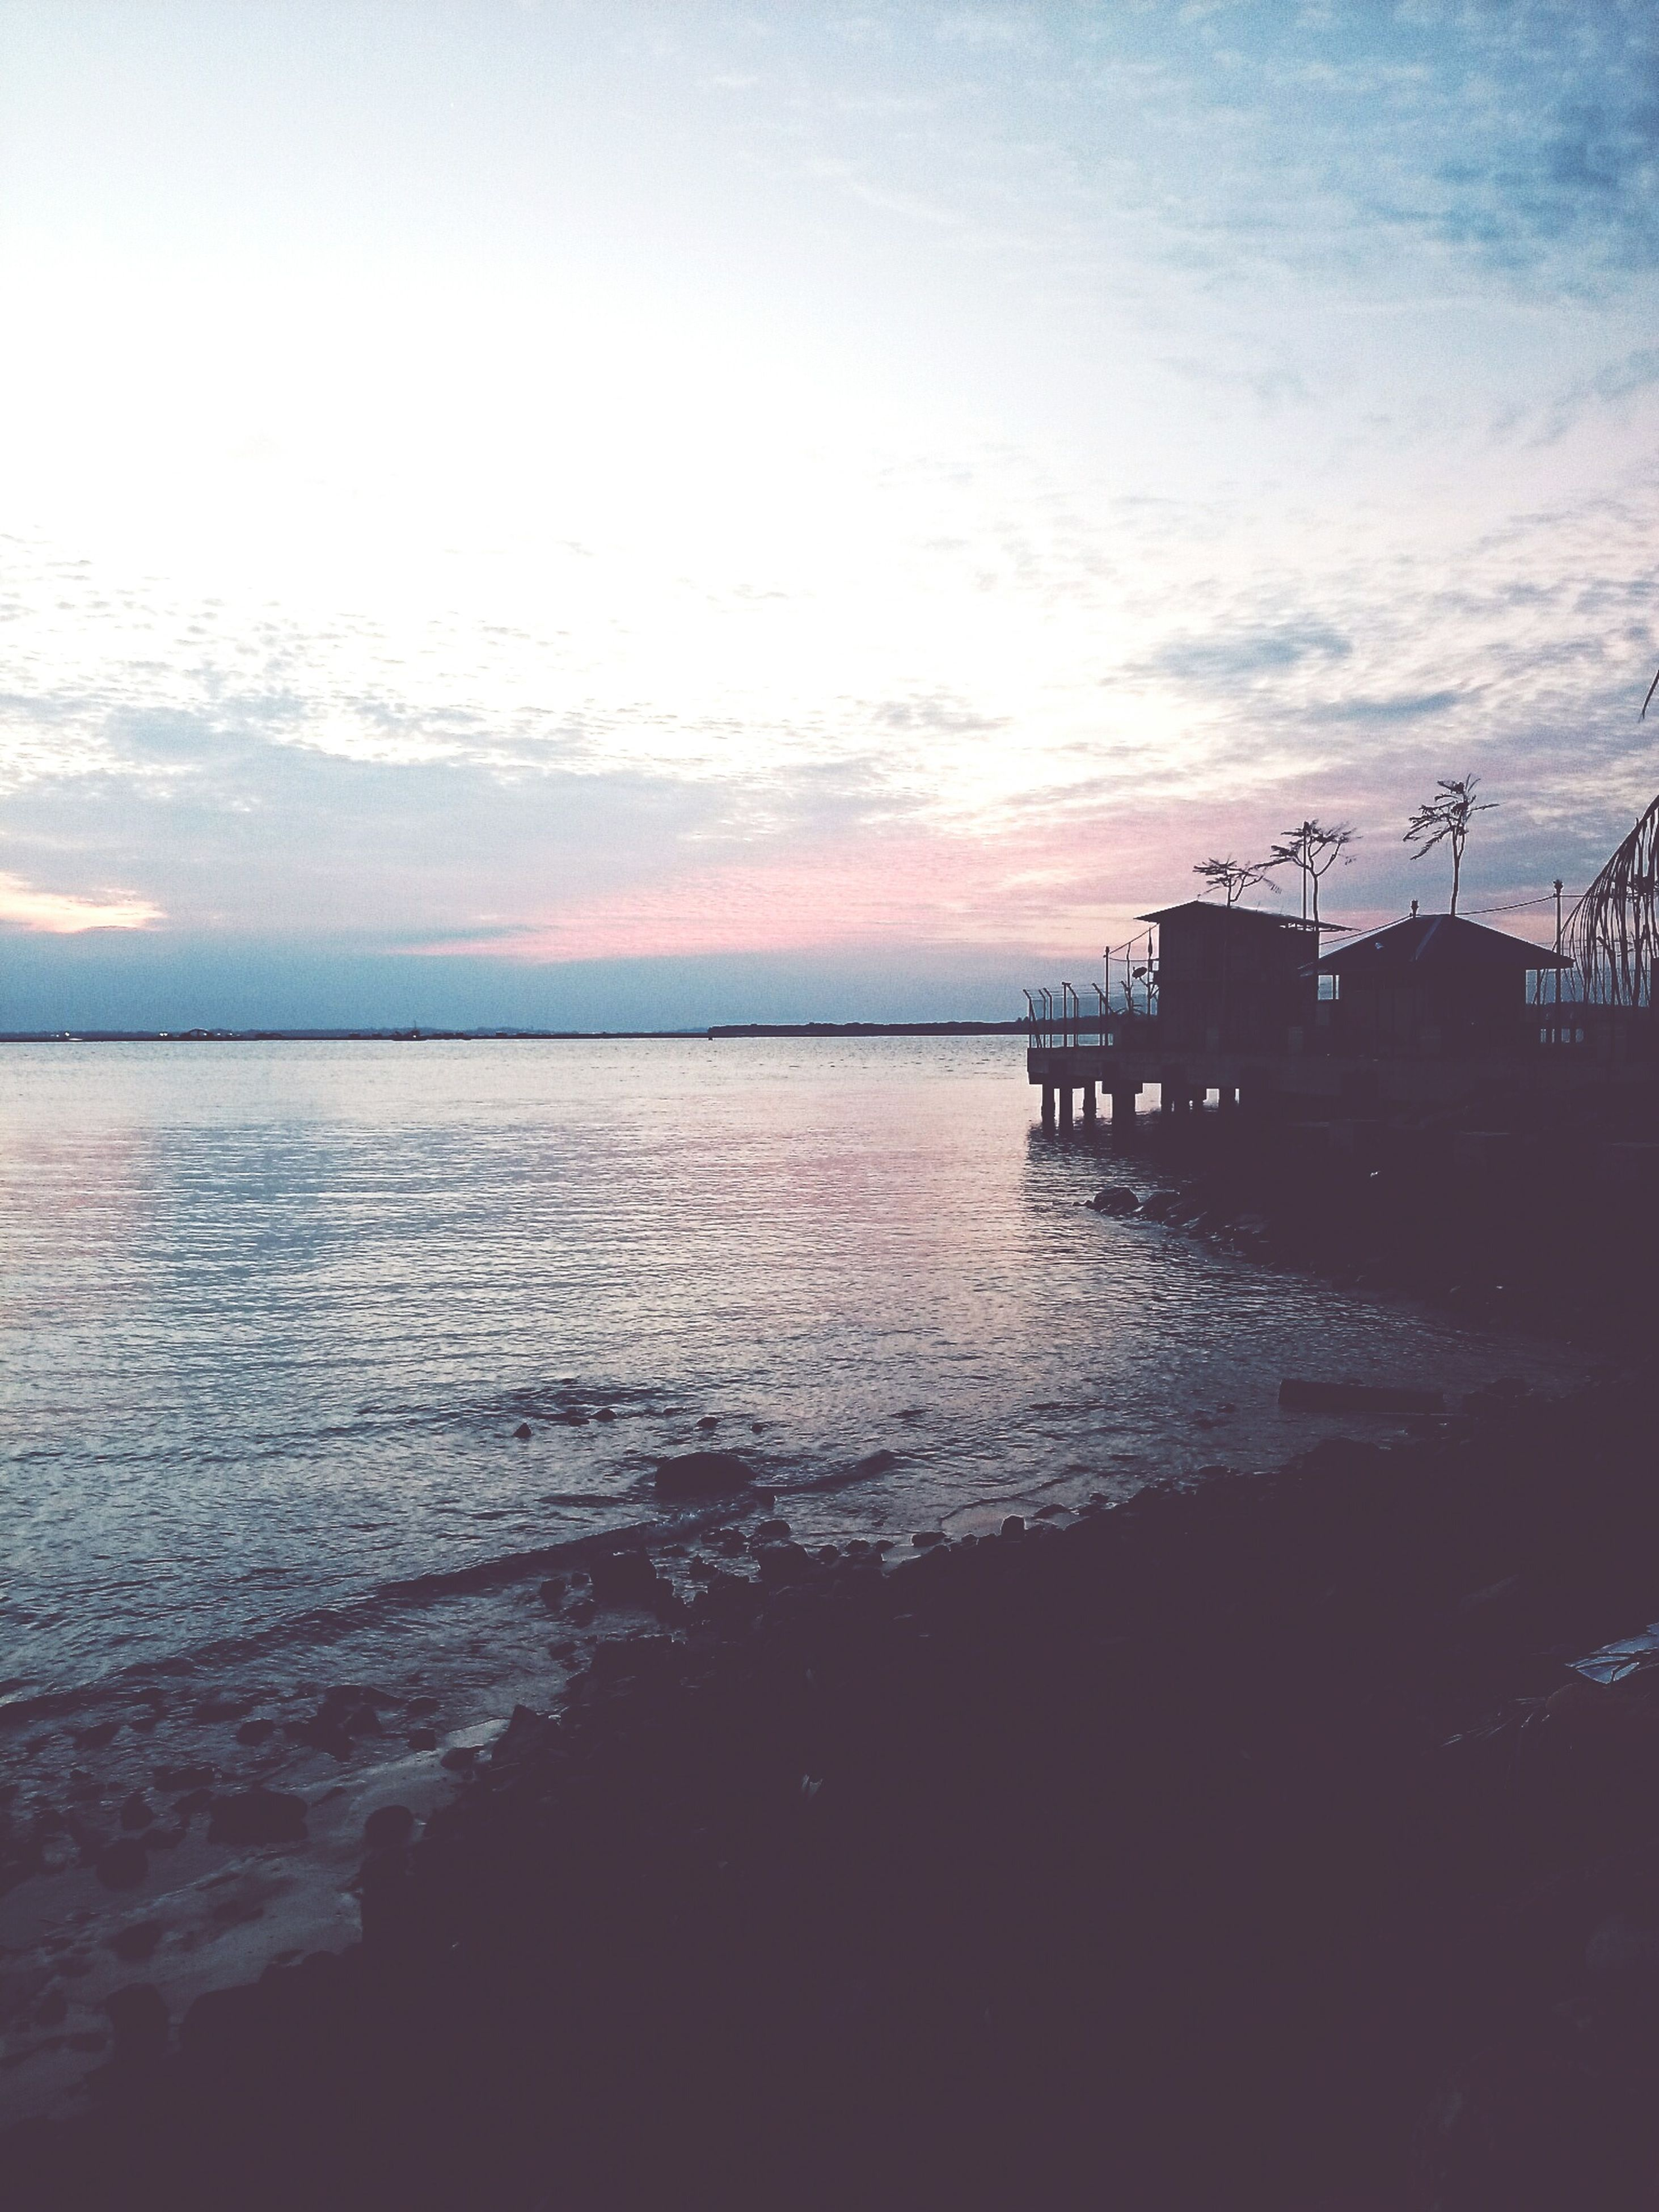 sea, water, horizon over water, sky, tranquil scene, scenics, tranquility, beauty in nature, sunset, beach, nature, pier, idyllic, shore, cloud - sky, built structure, silhouette, outdoors, calm, incidental people